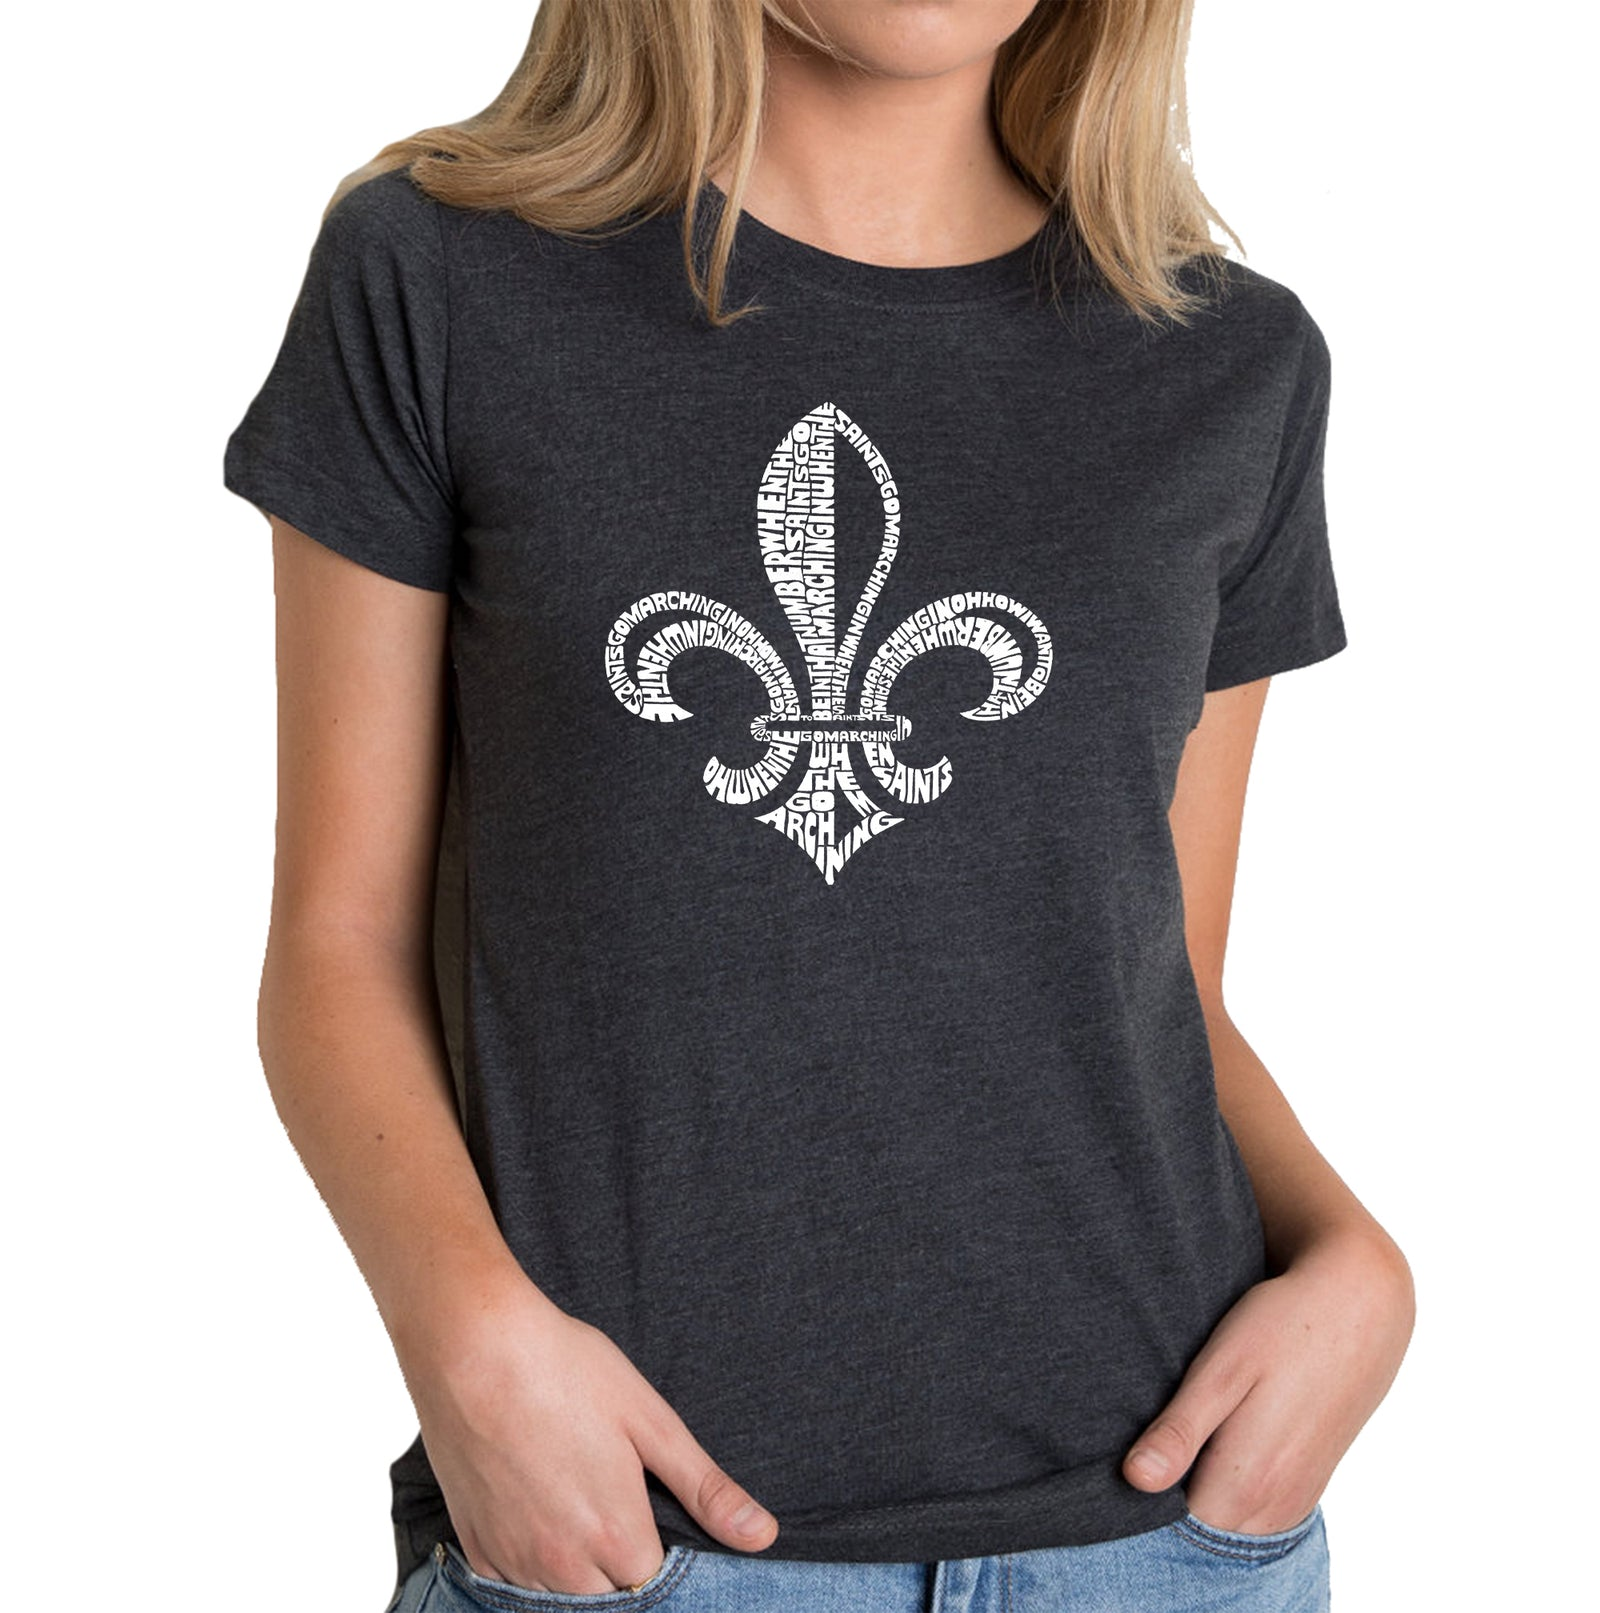 Women's Premium Blend Word Art T-shirt - LYRICS TO WHEN THE SAINTS GO MARCHING IN